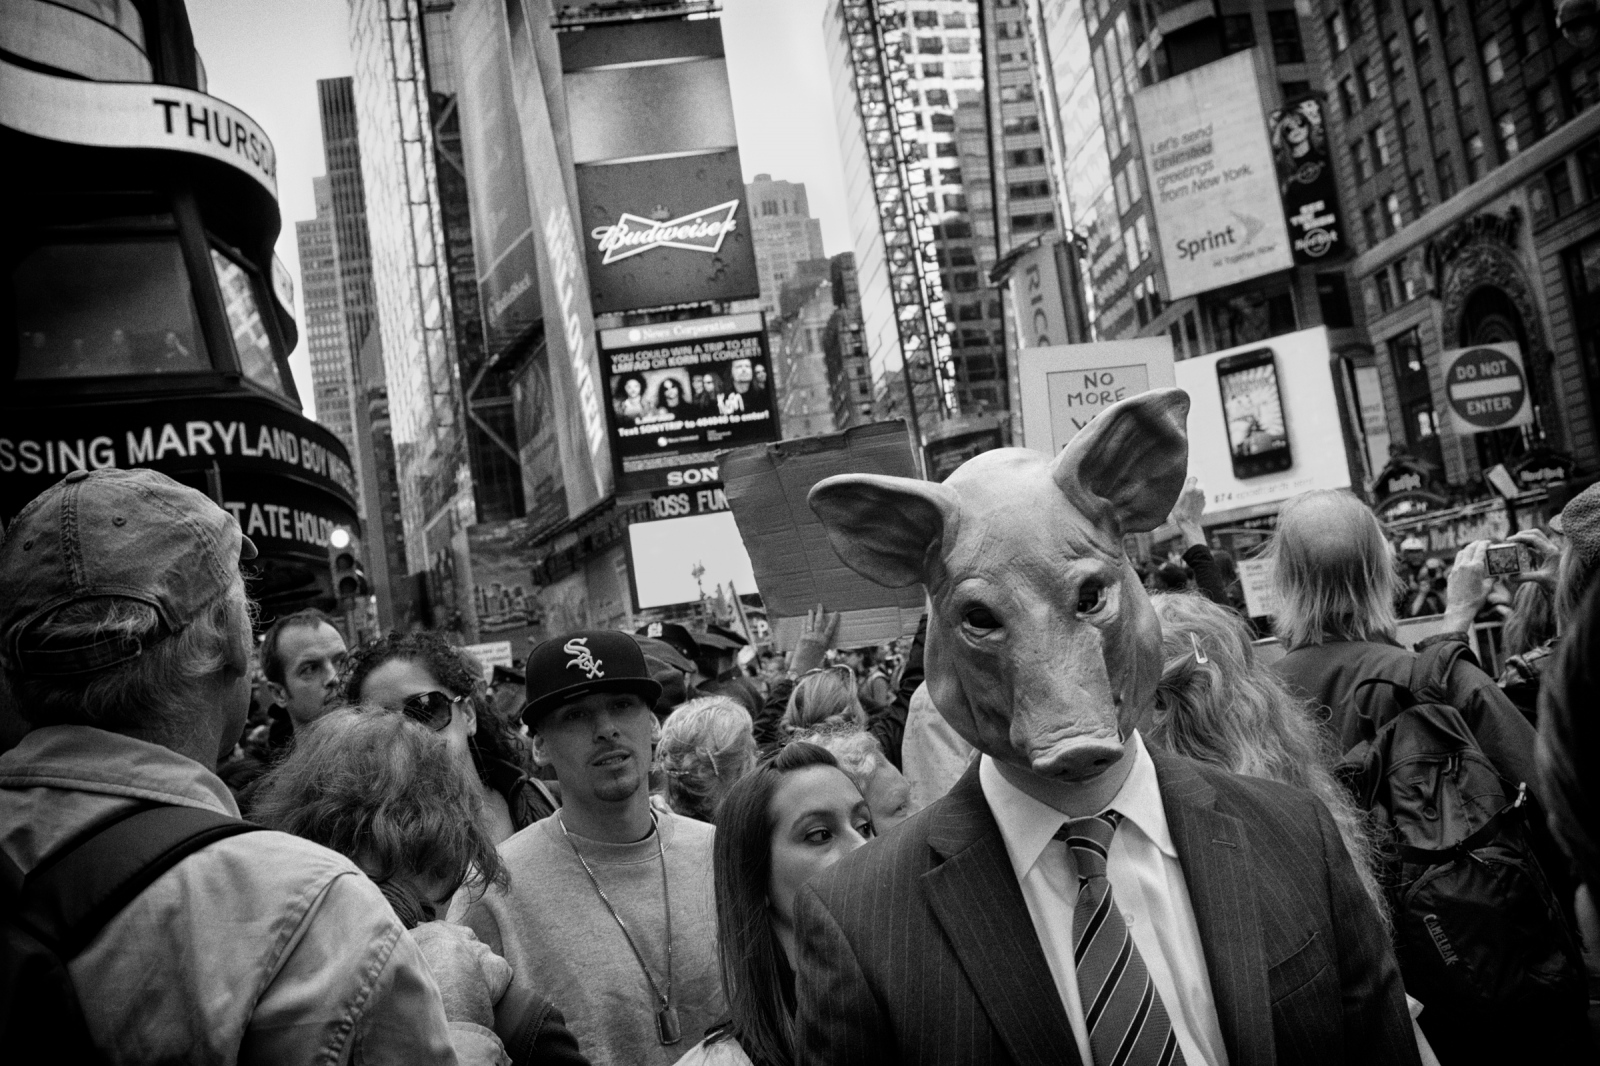 The protesters of Occupy Wall Street Movement march into Times Square, New York on Oct. 15, 2011.